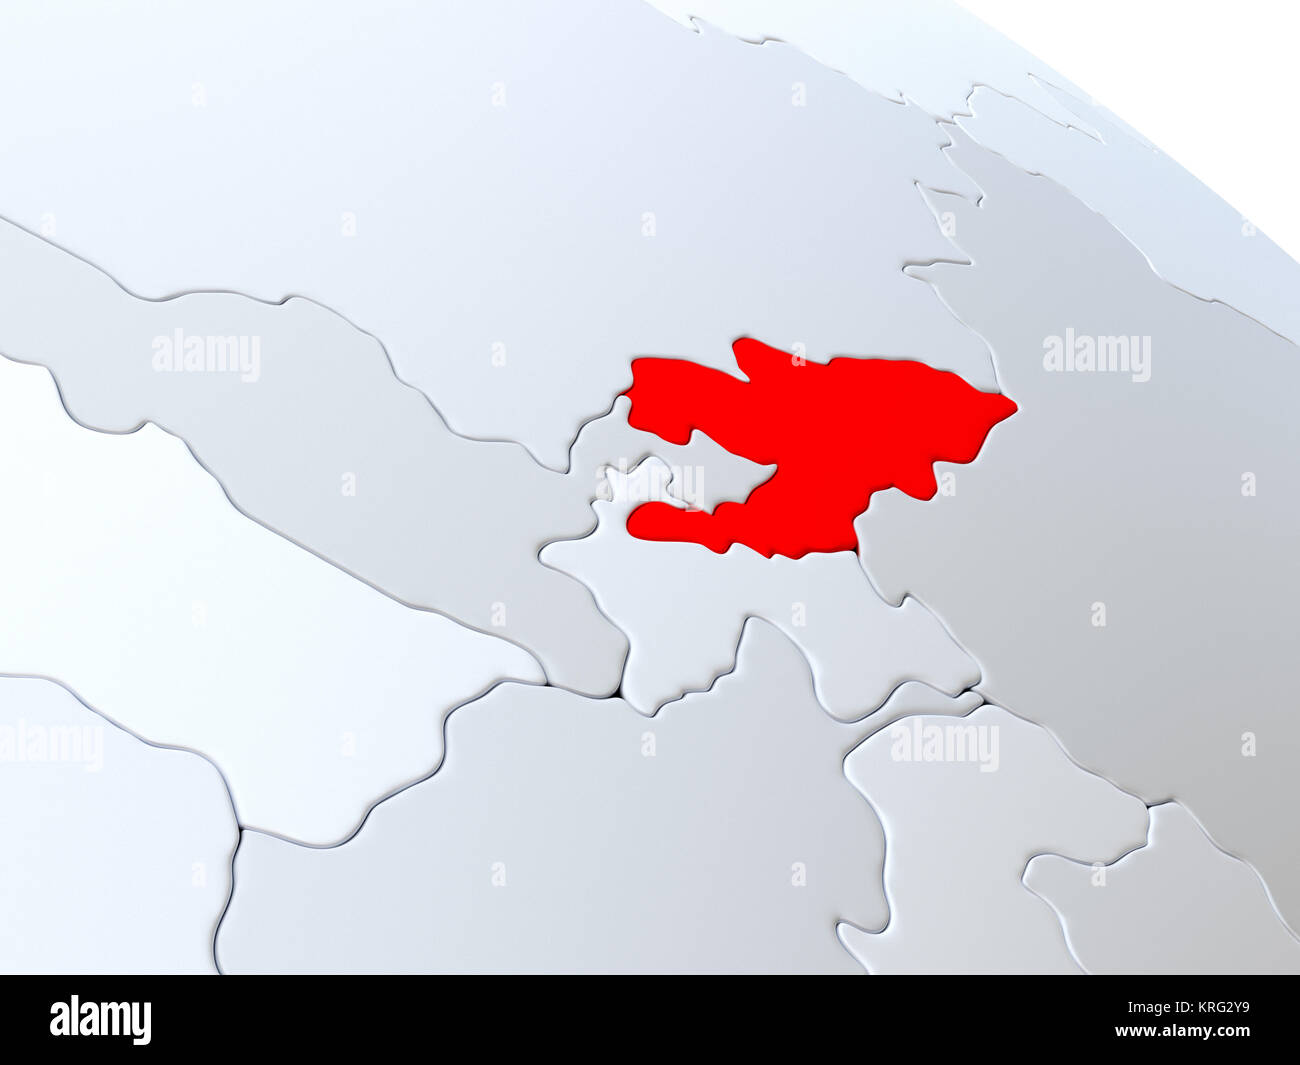 Kyrgyzstan on world map Stock Photo Royalty Free Image 169383965